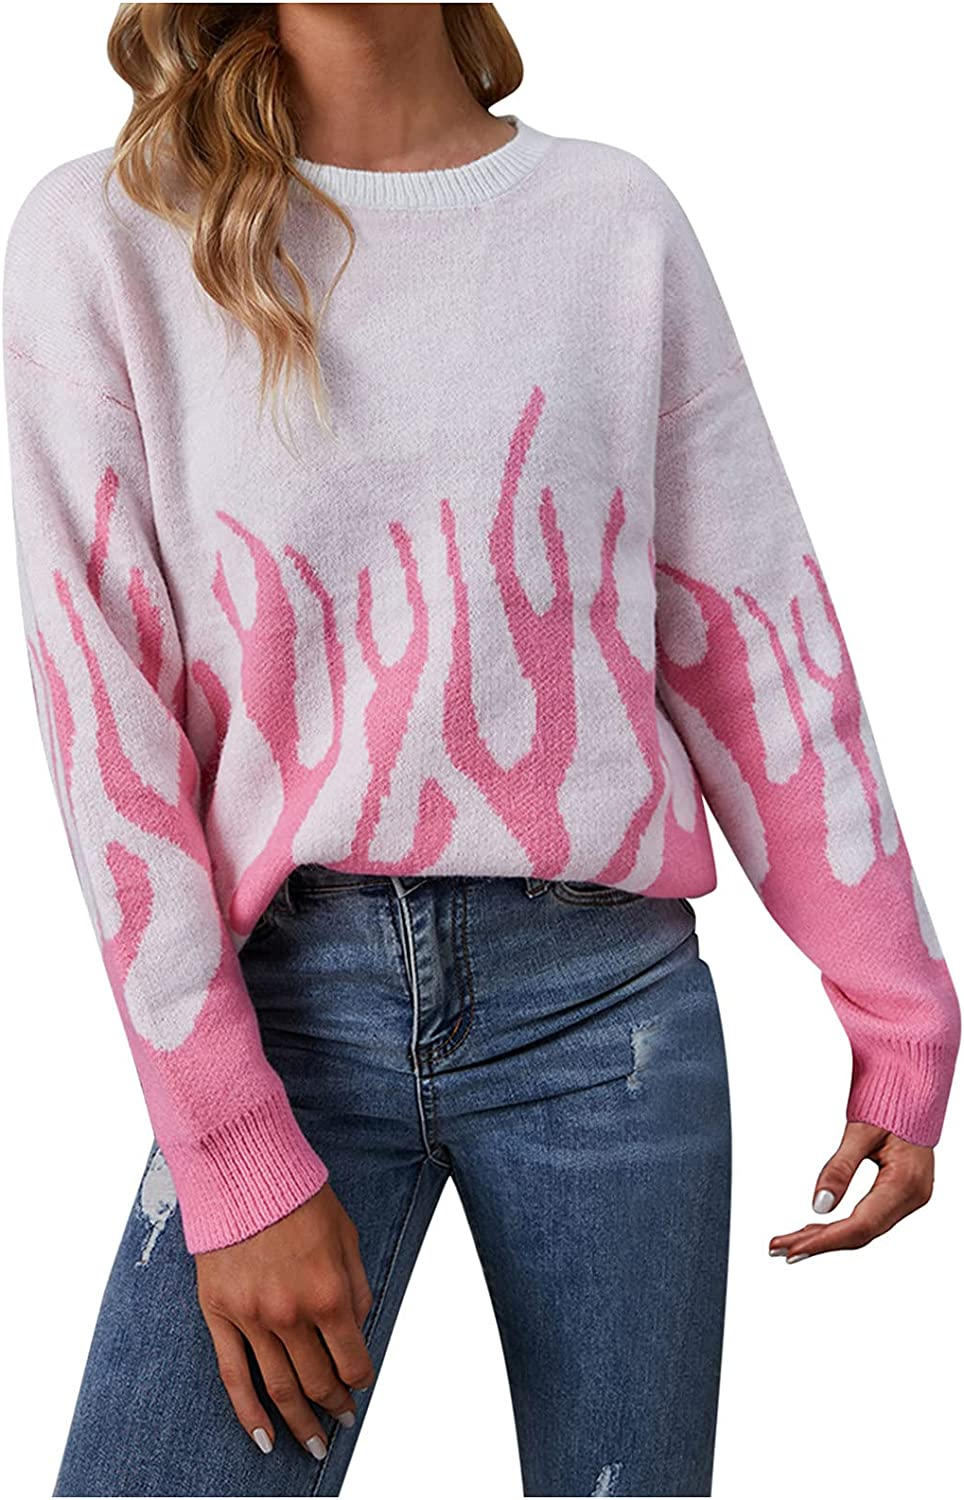 Women's Long Sleeve Flame Casual Knitting Sweater Color Block Patchwork Loose Crew Neck Knitted Jumper Pullover Tops